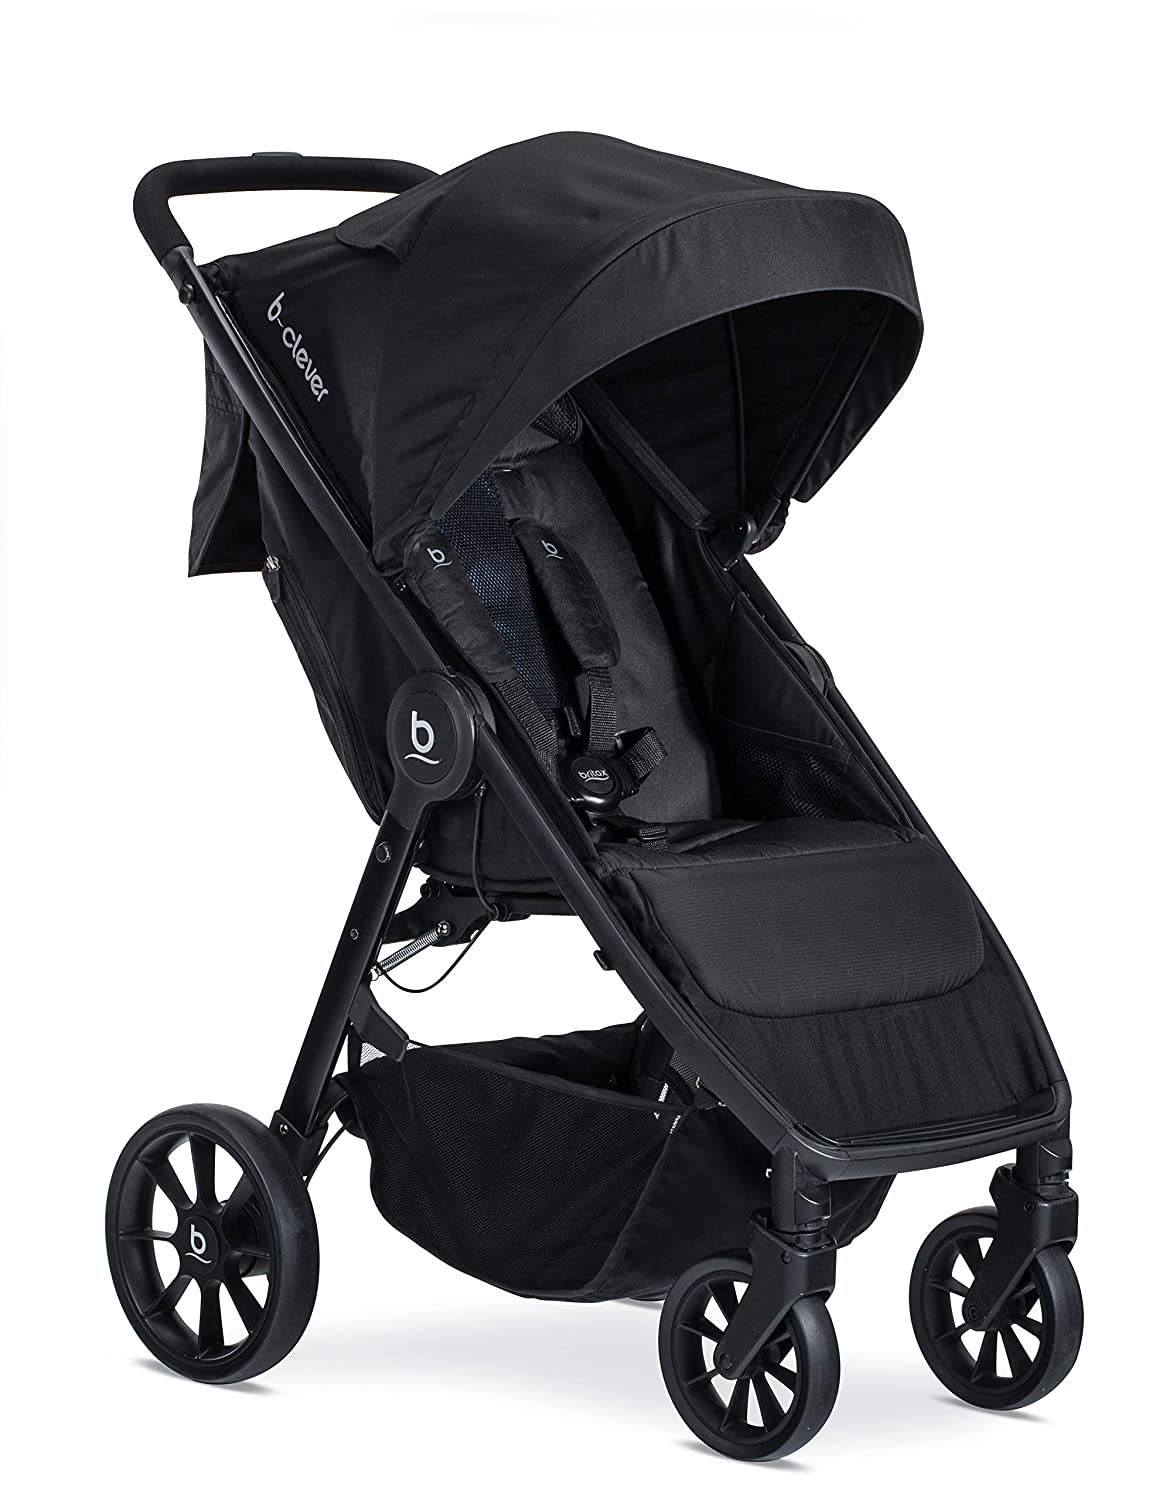 Britax B-Clever Lightweight Stroller | One Hand, Easy Fold + Ventilated Canopy + Cool Flow Ventilated Fabric, Cool Flow Teal